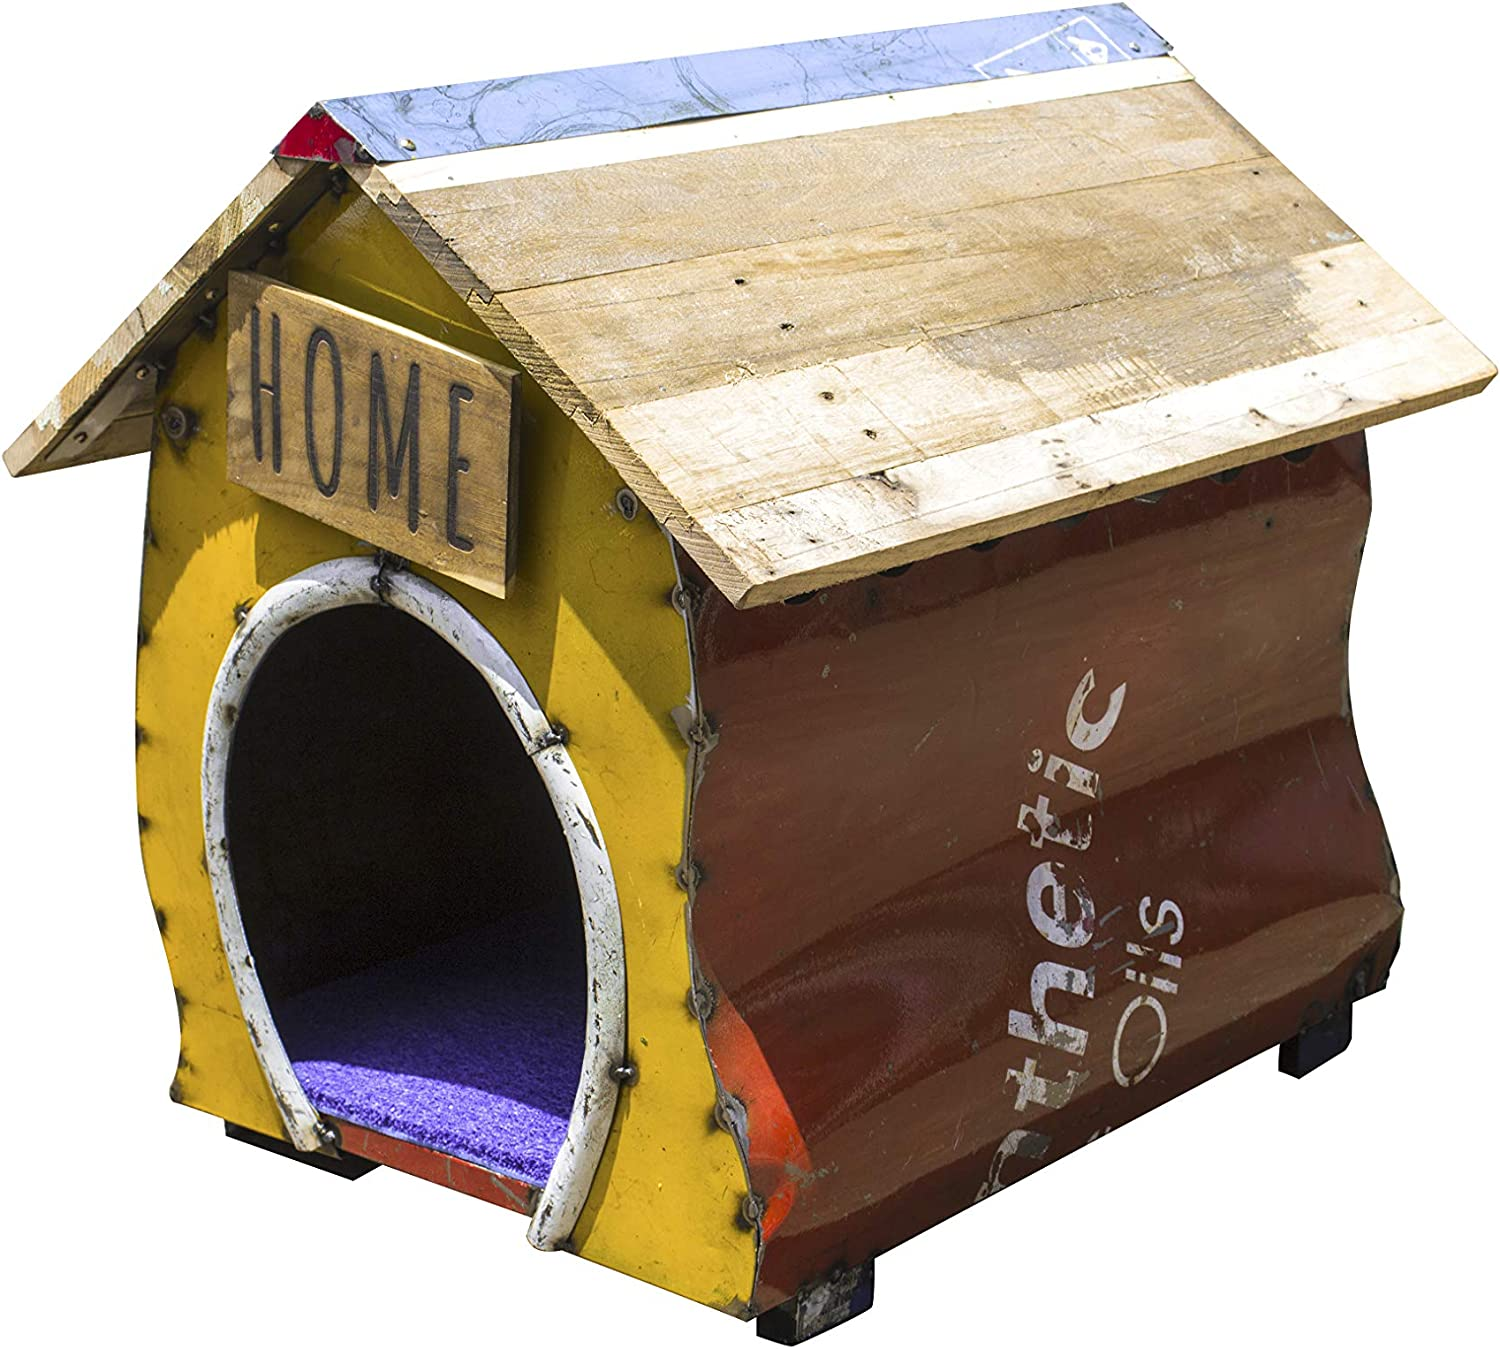 Upcycled Emporium Dog Kennel and Handcrafted Home Latest item Pet Unique fr Limited time sale